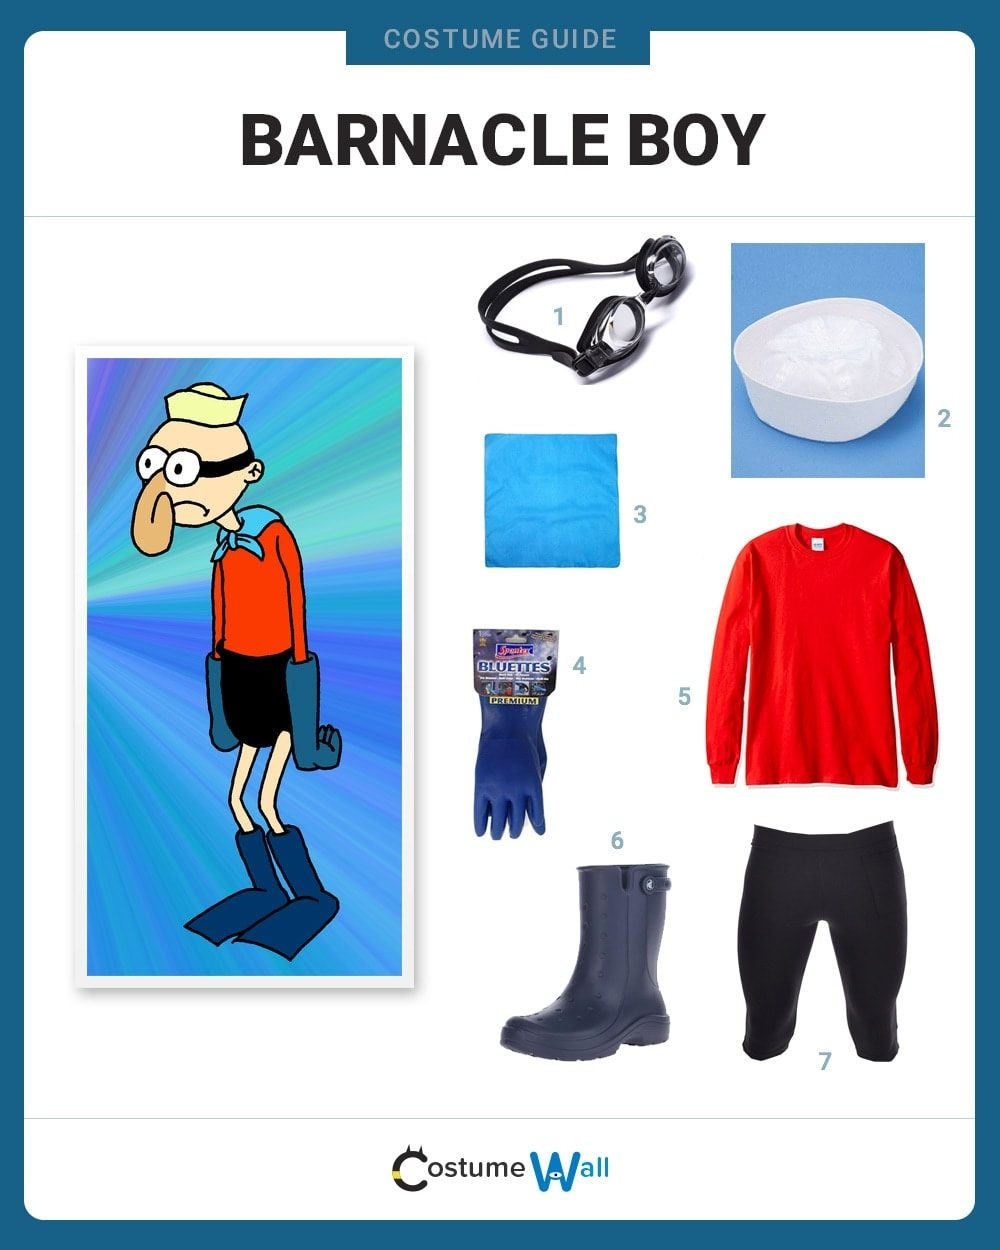 Barnacle Boy Costume Guide